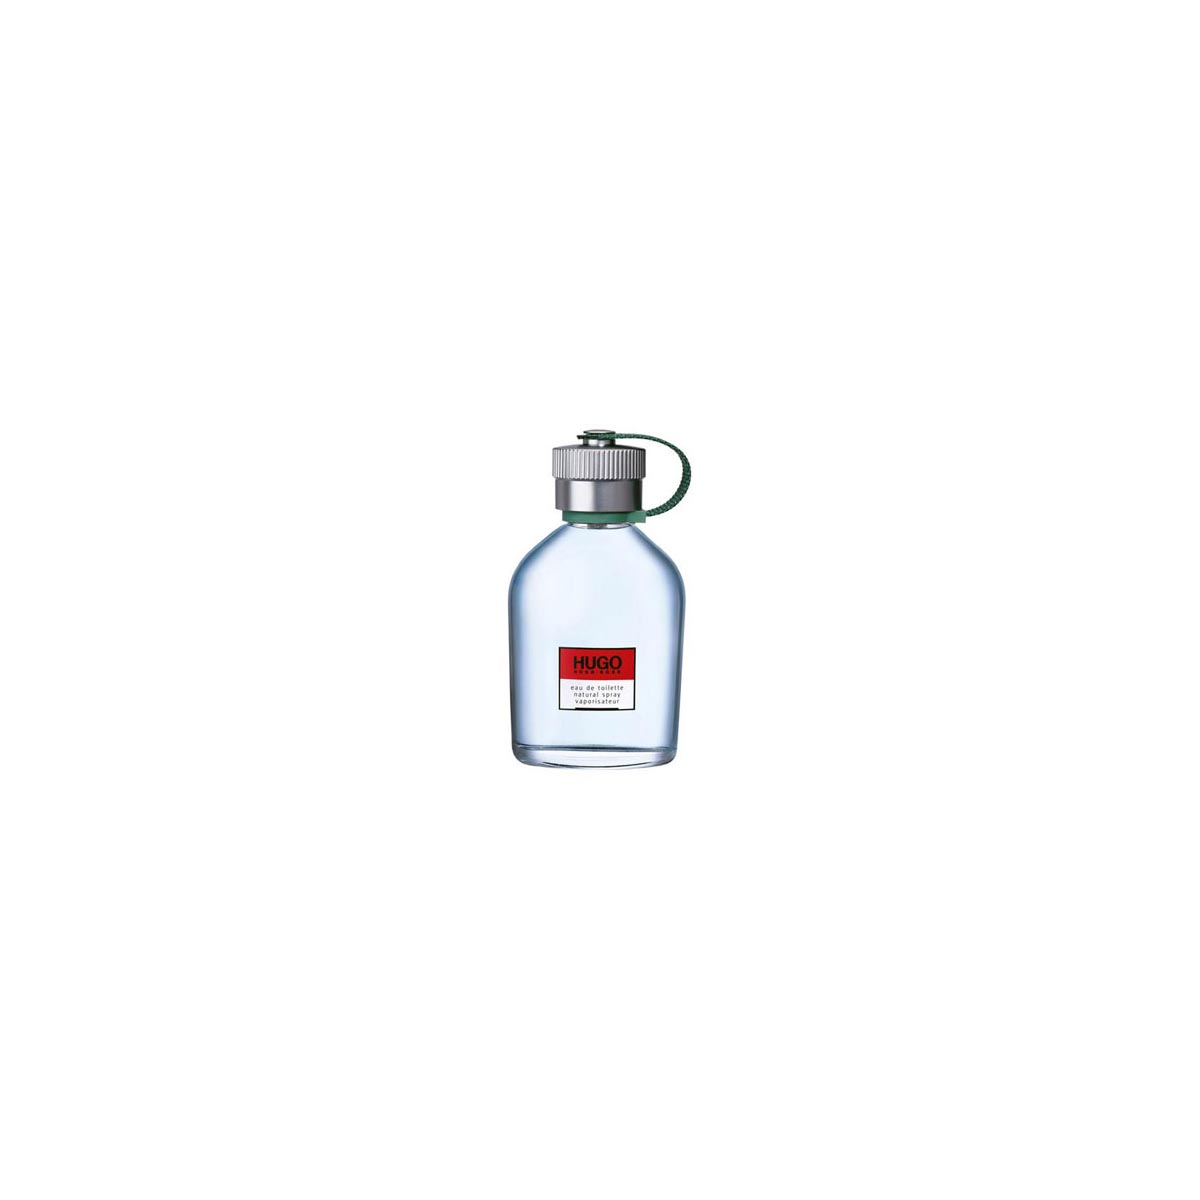 Hugo boss eau de toilette 200ml vaporizador